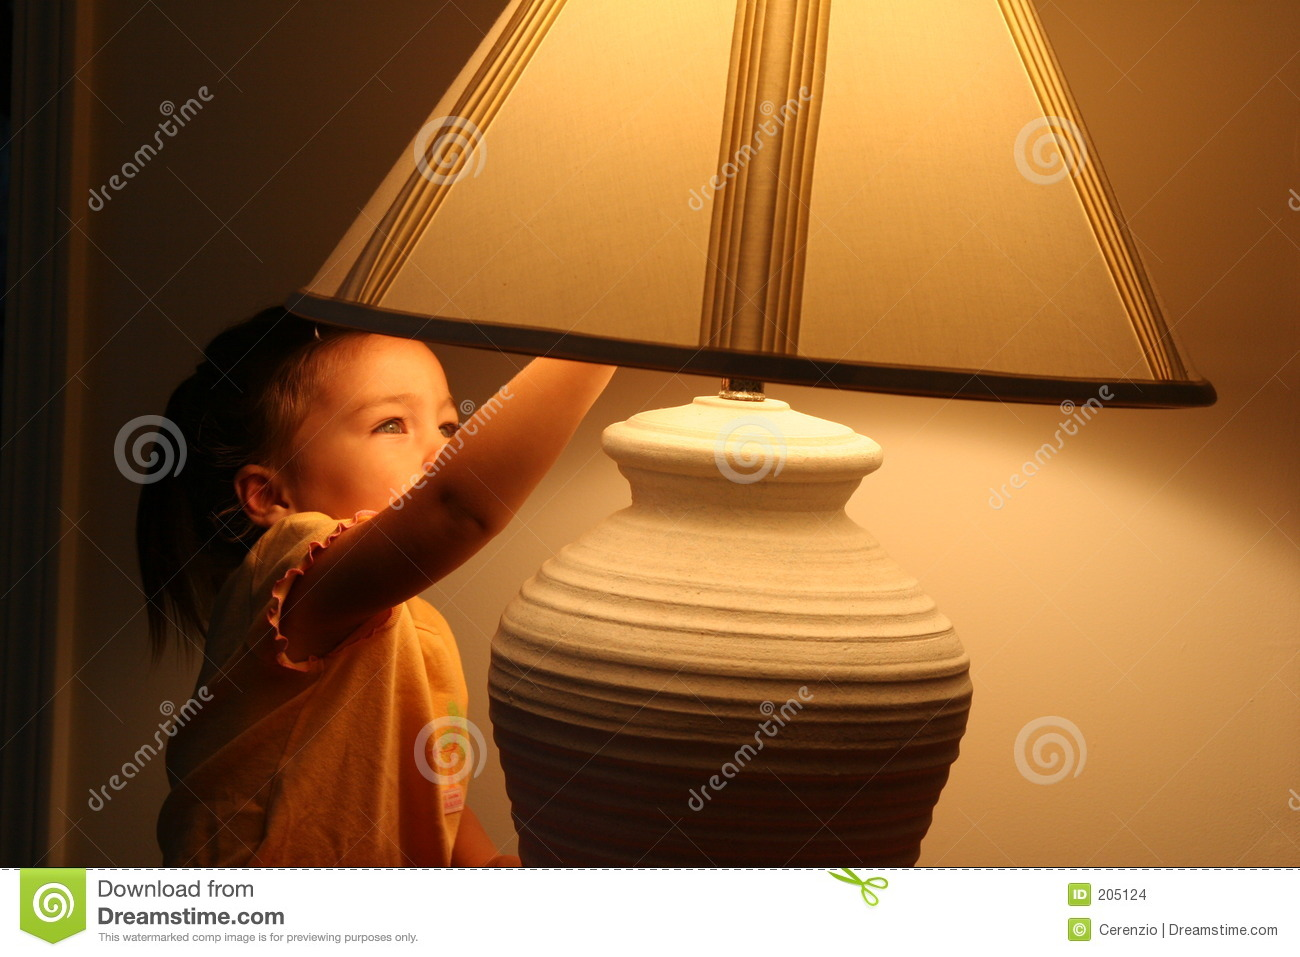 Turning Off The Lights Stock Images  Image 205124